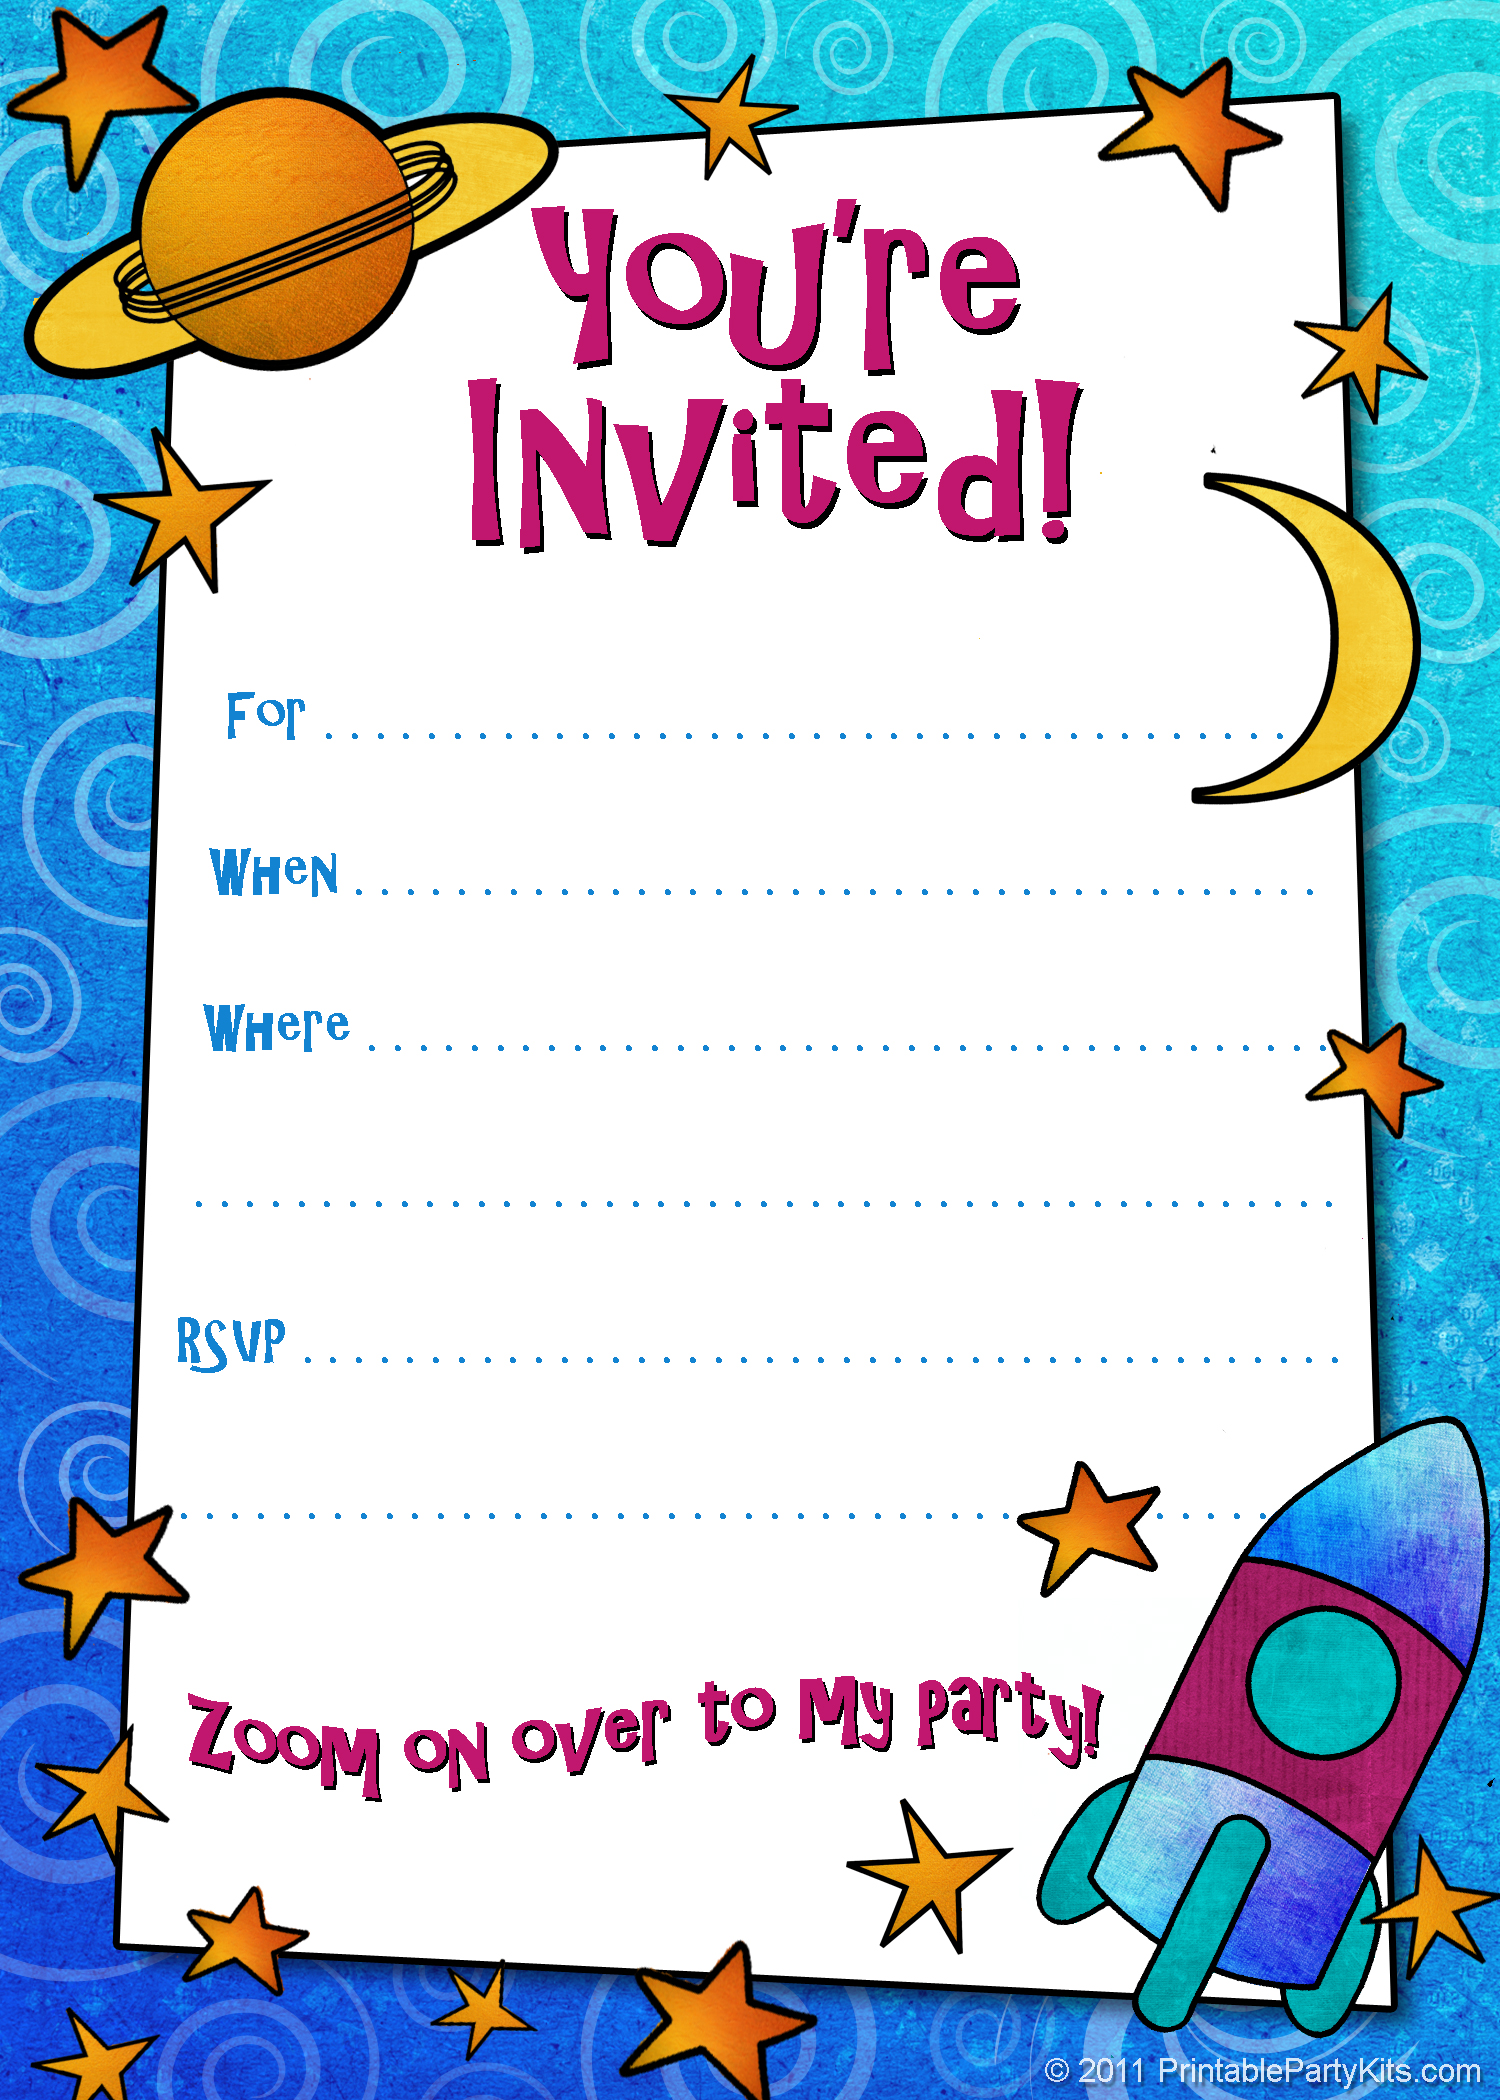 design your own birthday invitation cards free ; boys-birthday-invitations-and-get-inspired-to-create-your-own-Birthday-invitation-design-with-this-ideas-1